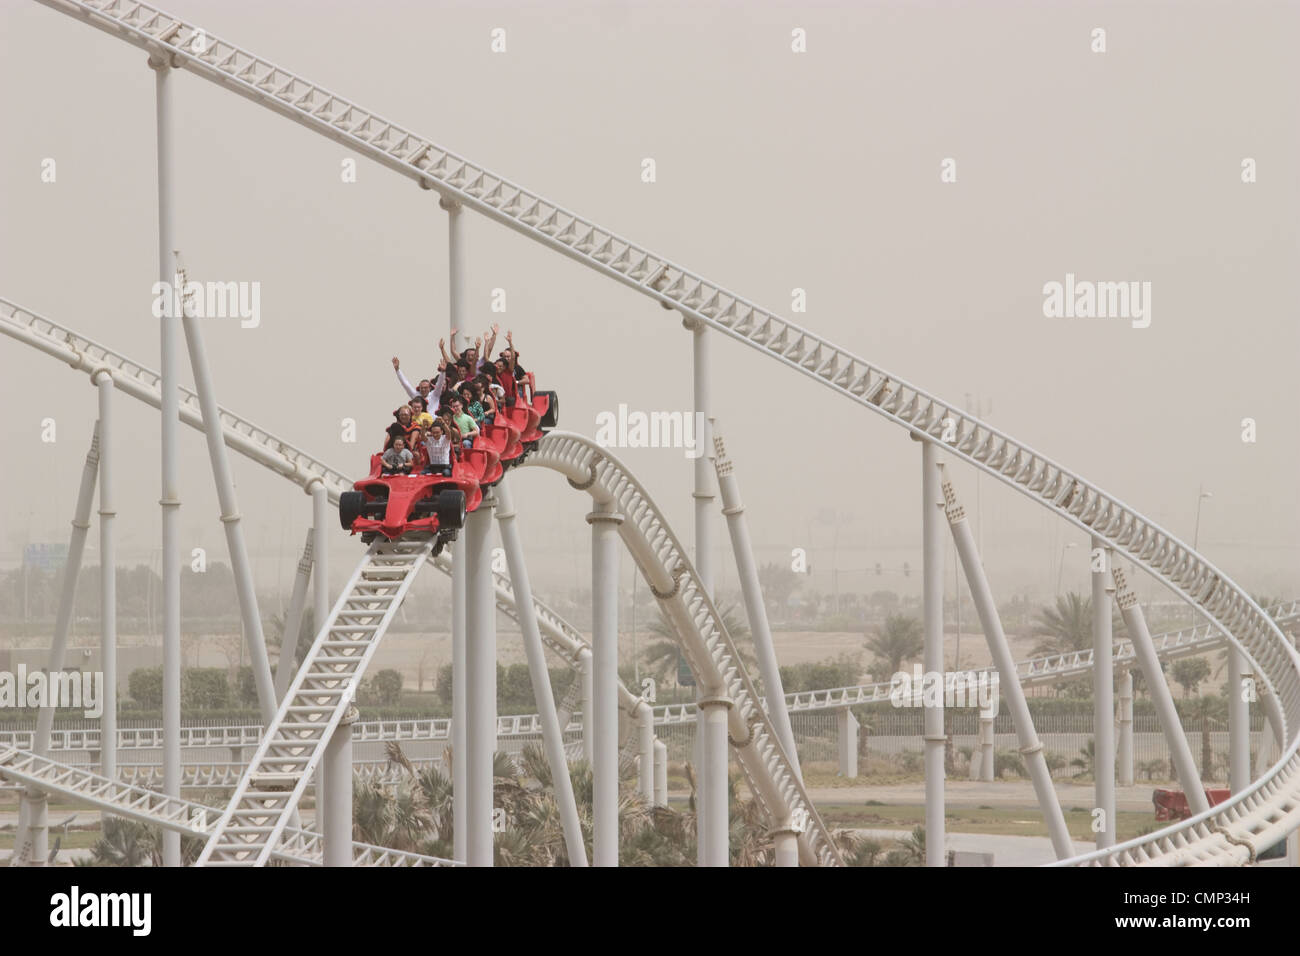 uae united arab emirates ferrari world abu dhabi roller coaster ride. Cars Review. Best American Auto & Cars Review